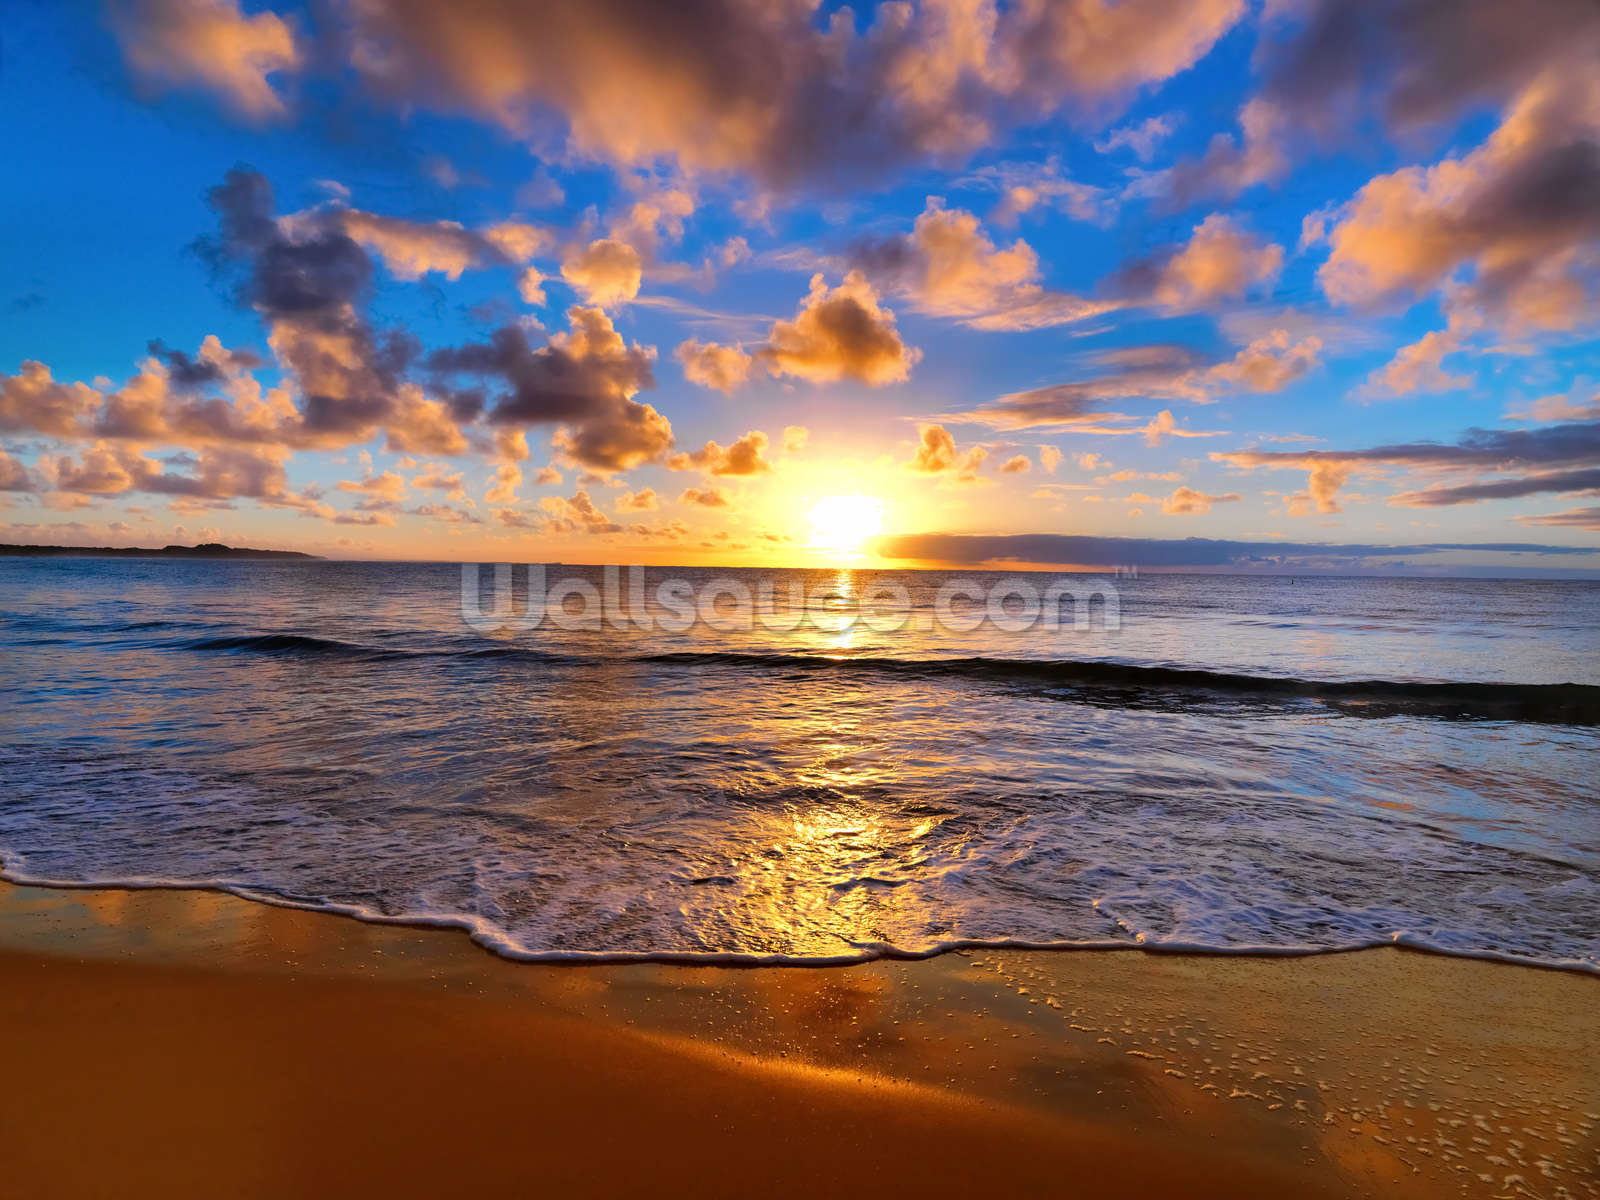 Horizon sunset wallpaper wall mural wallsauce usa for Beach sunset wall mural